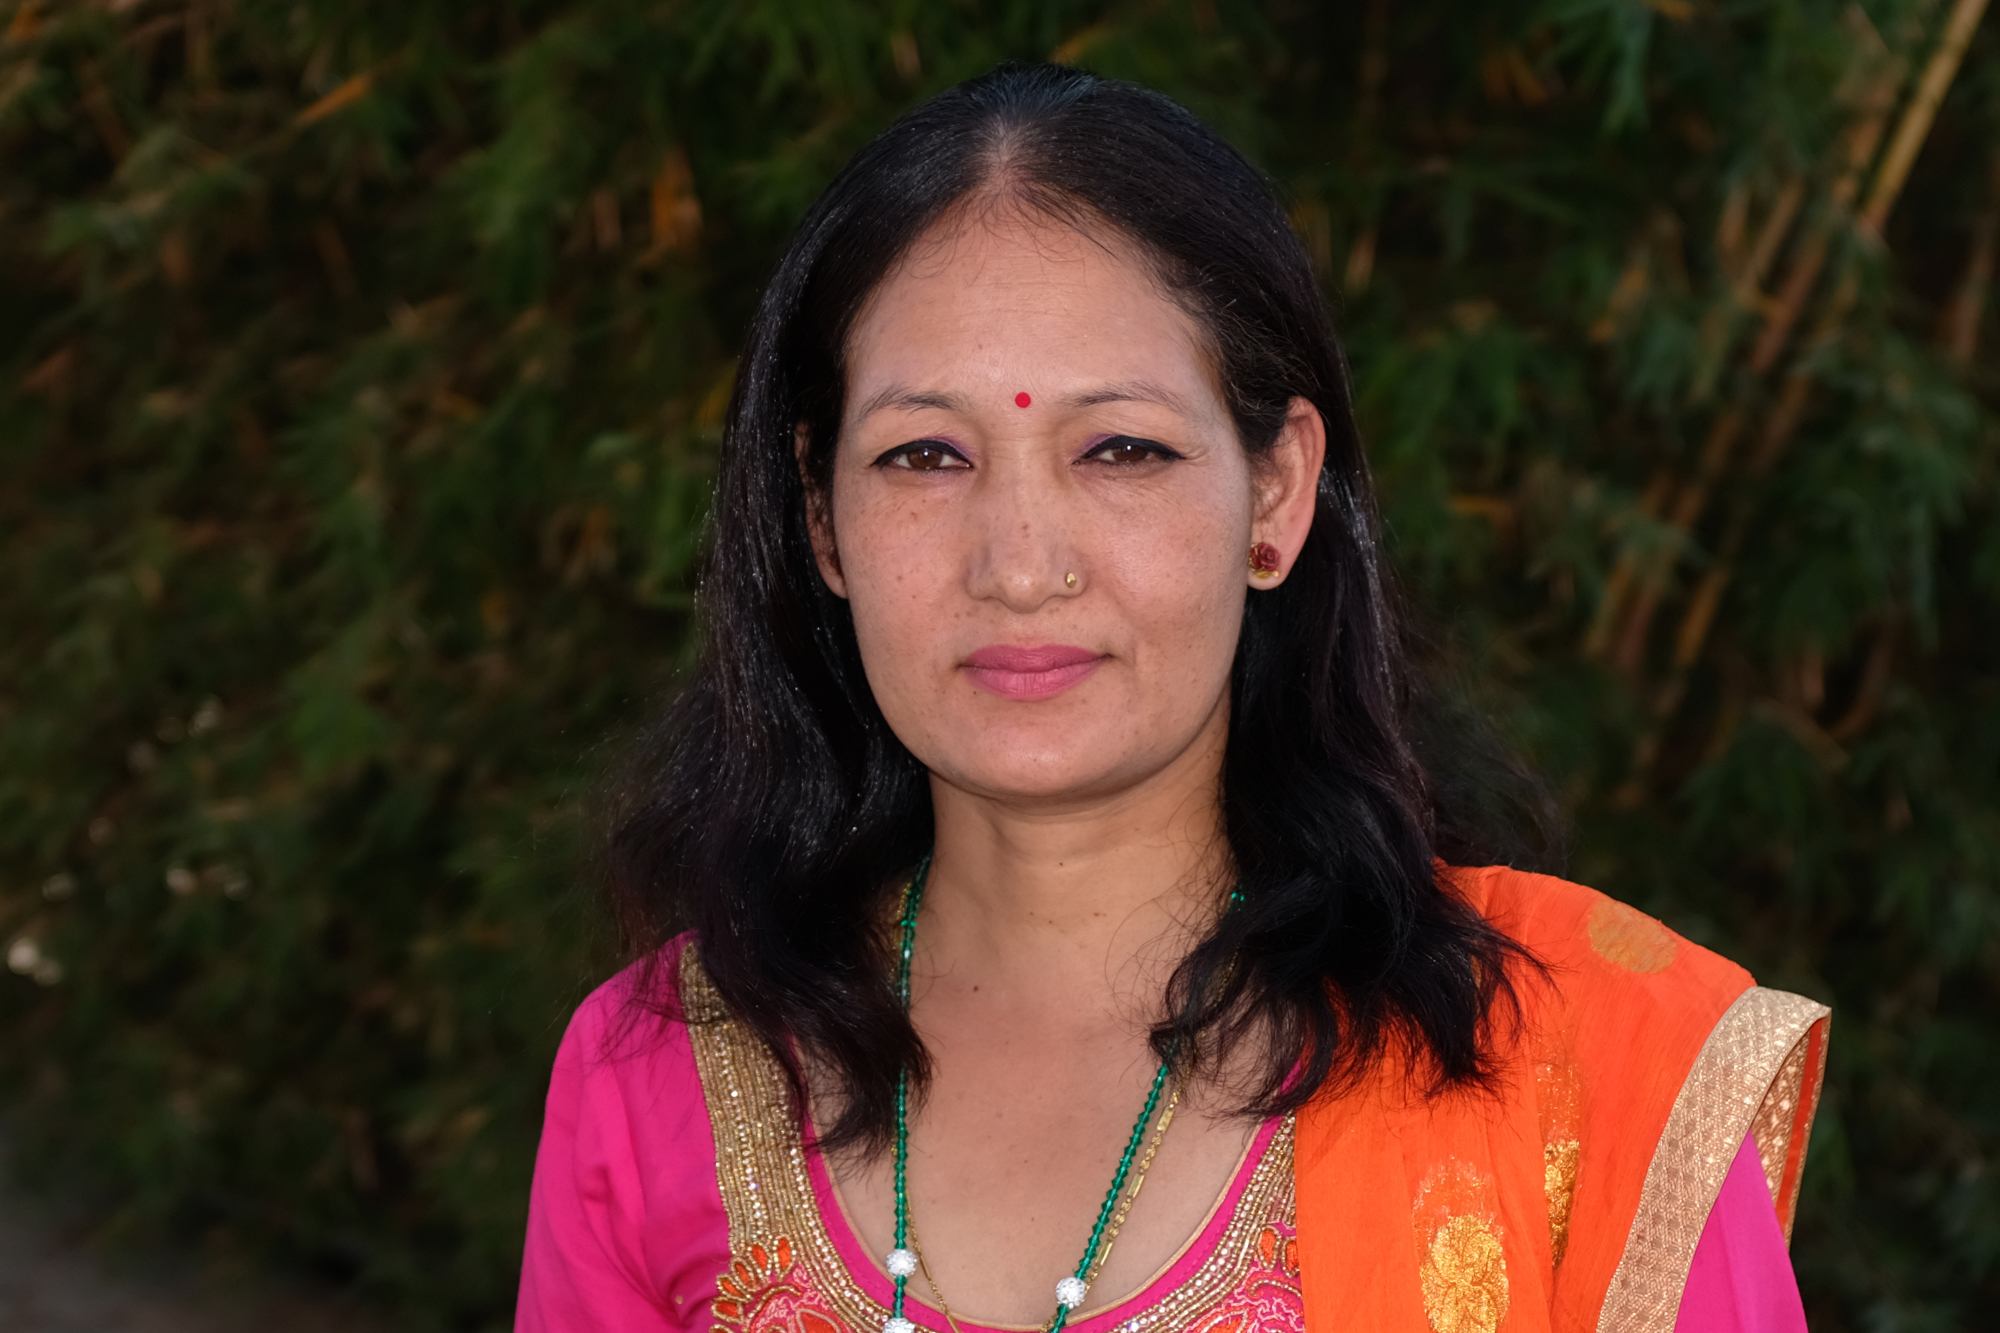 Kaushila Thapa, Ast. Admin & Finance Officer